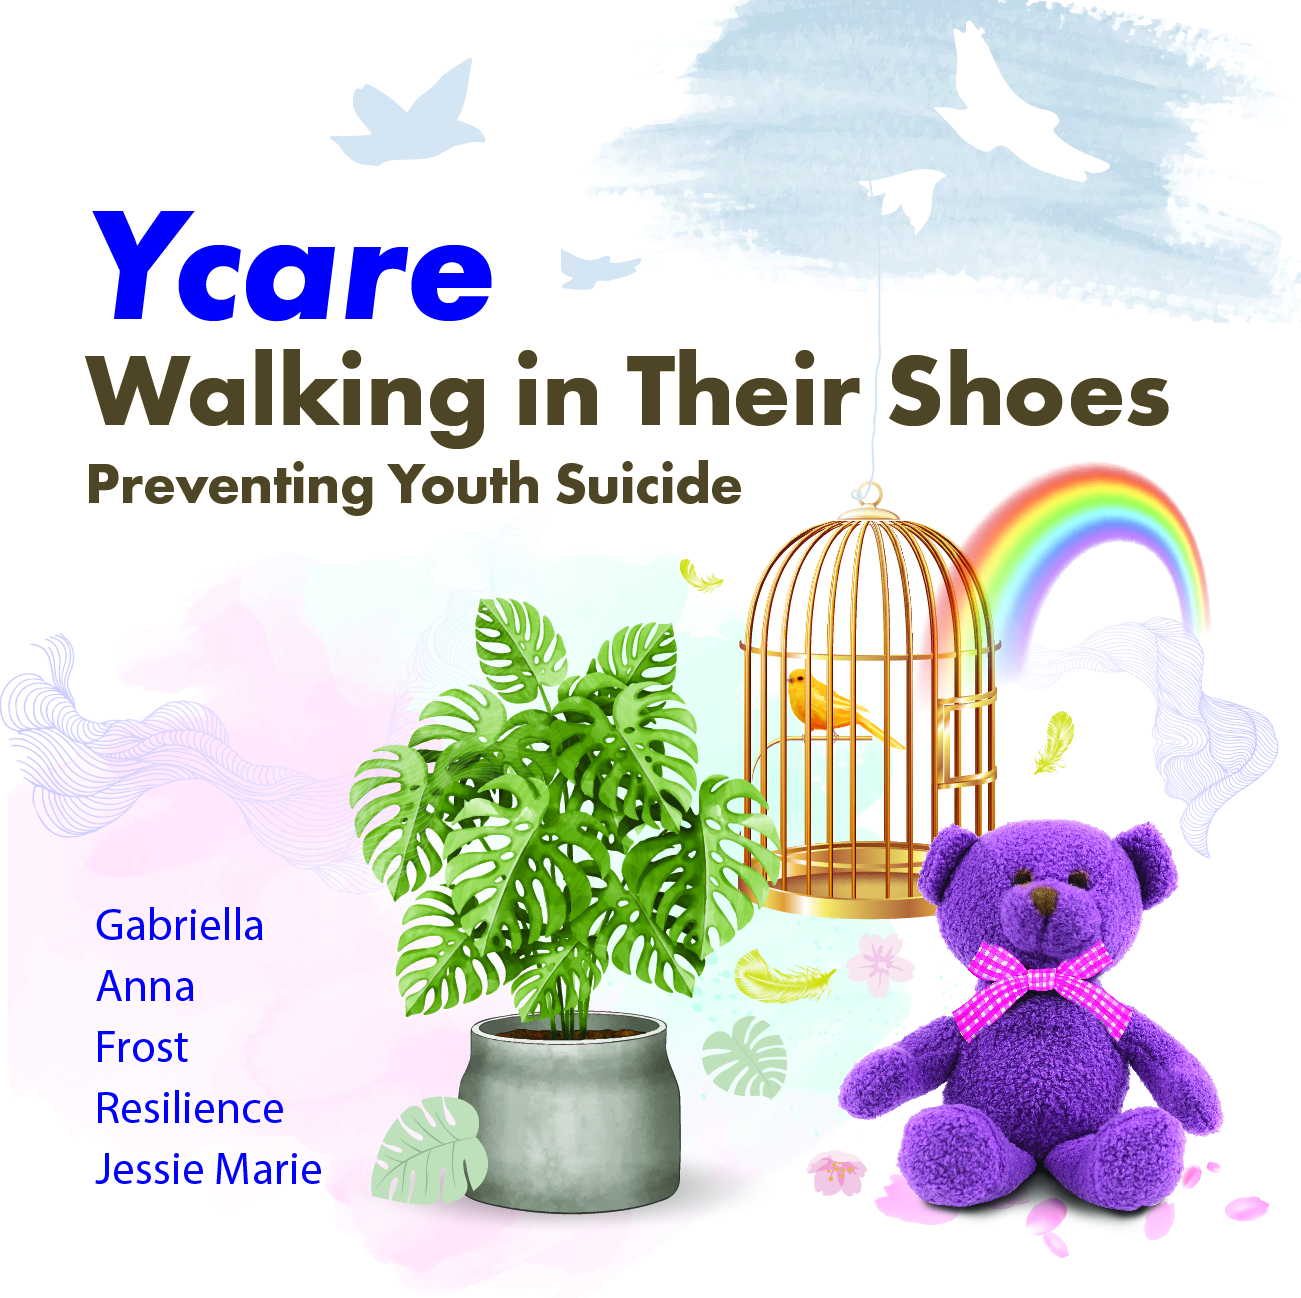 Ycare: Walking in Their Shoes